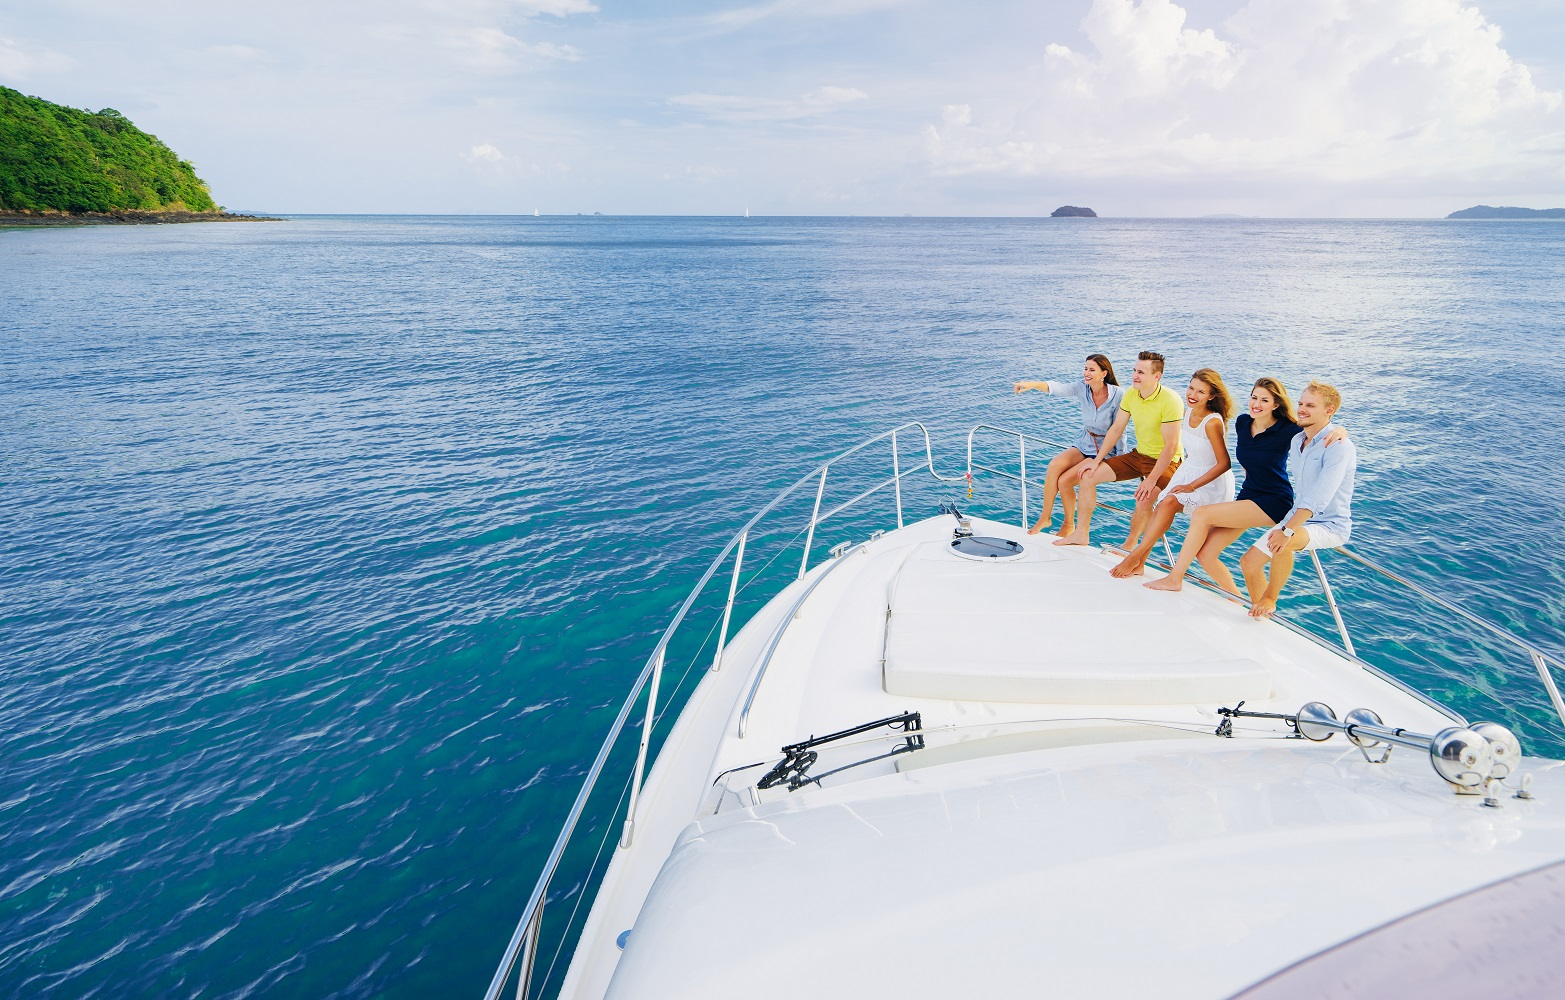 Water Time Charter